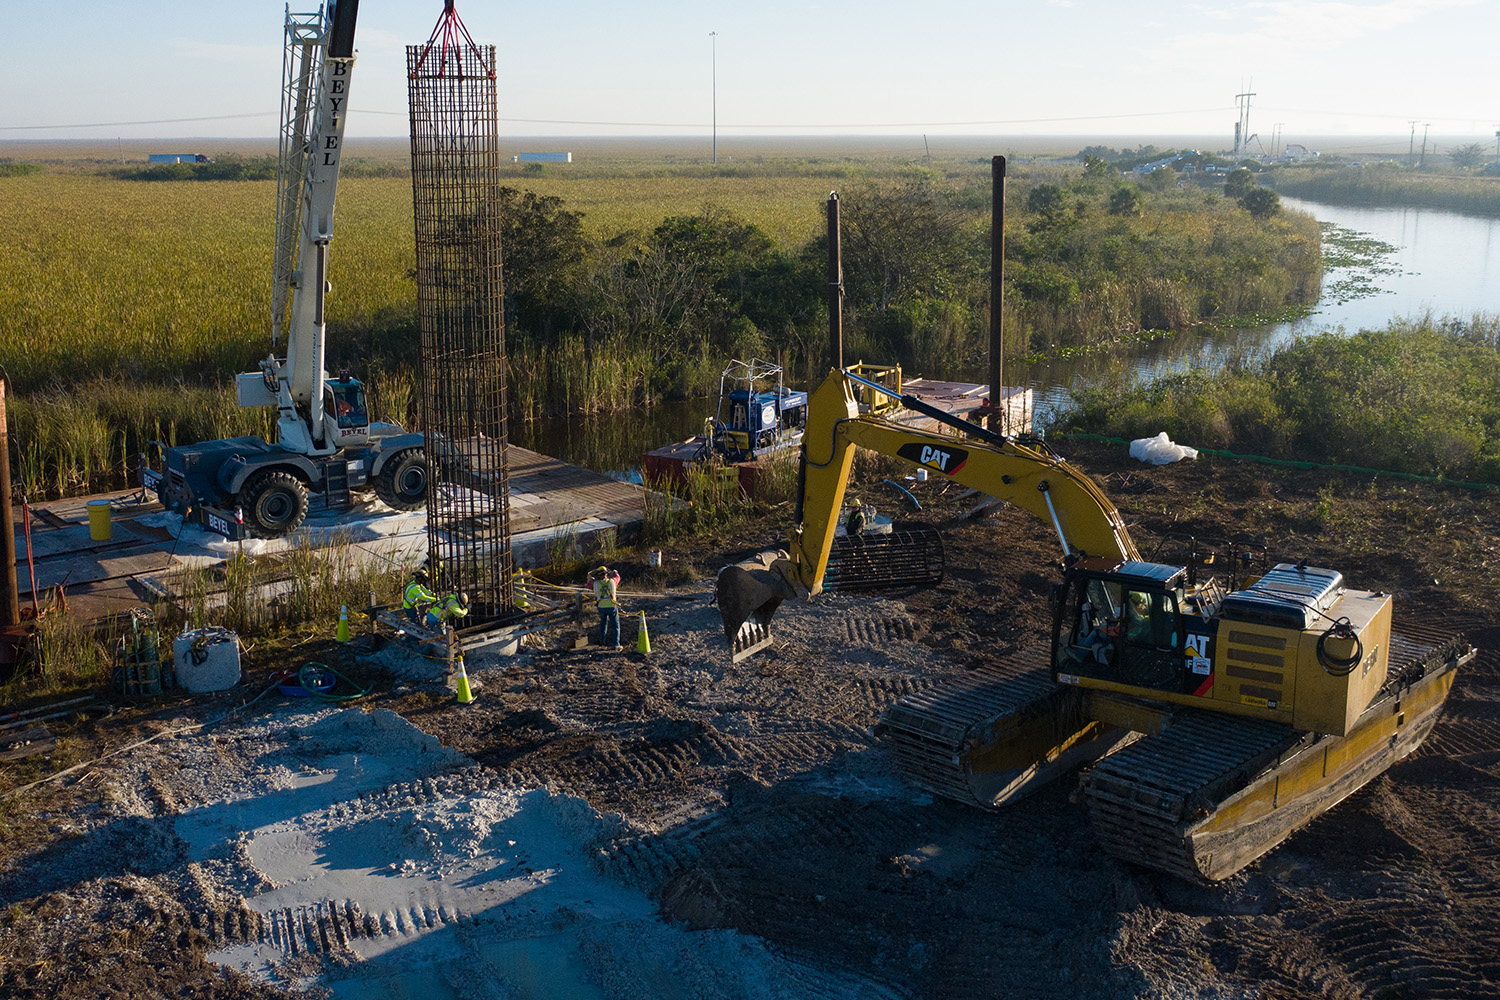 aldridge-electric-top-best-electrical-utility-power-contractors-construction-nationwide-drilling-foundation-foundations-transmission-lines.jpg